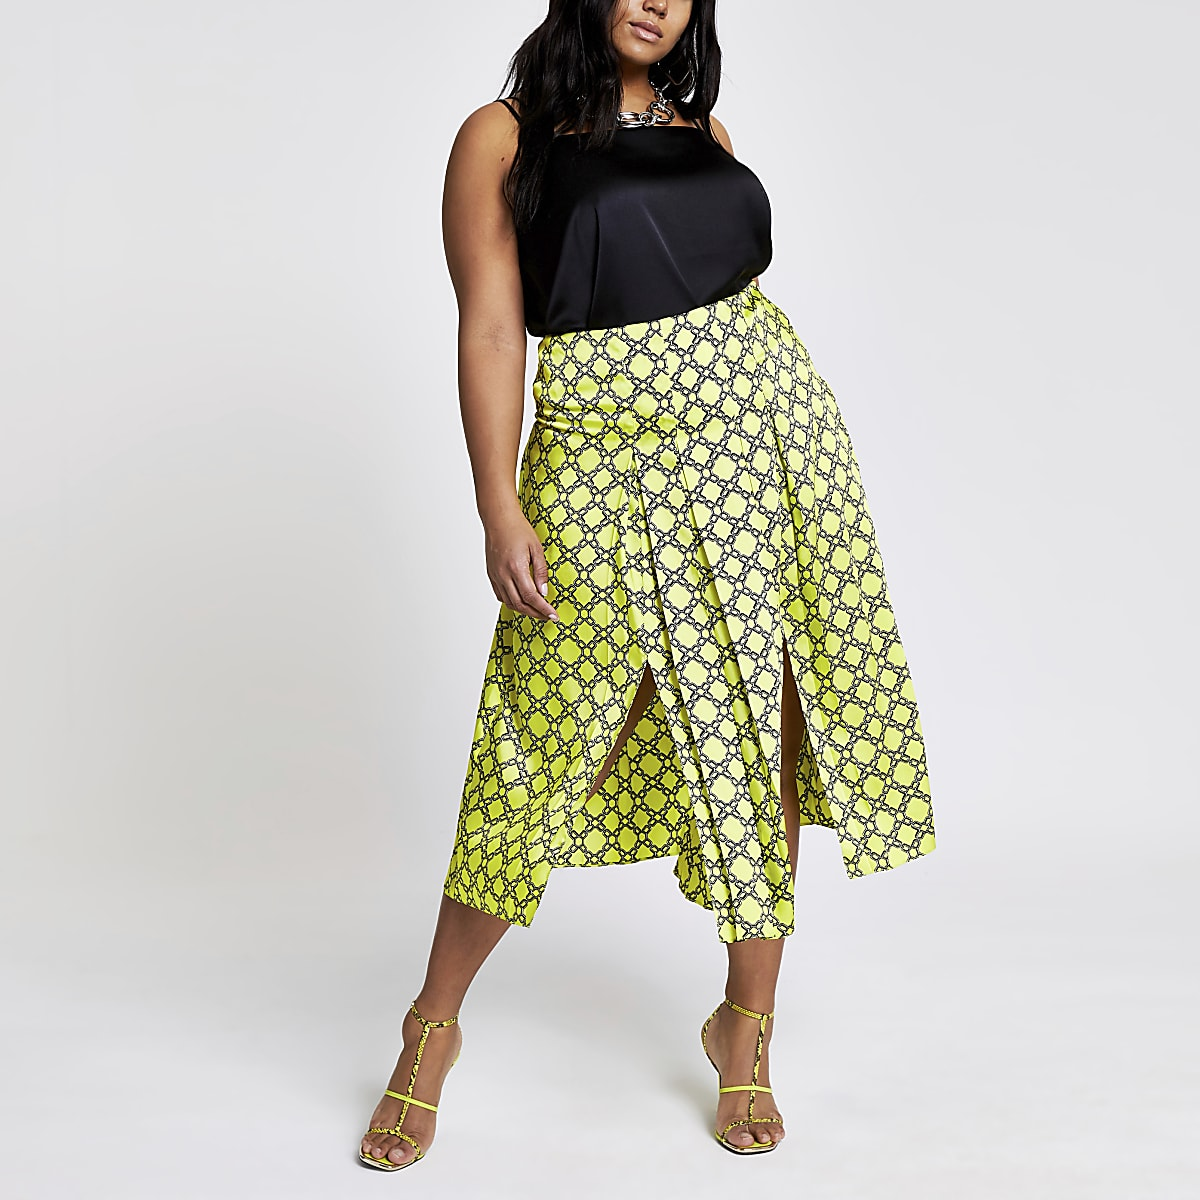 8c8ad250d Womens Plus Size A Line Skirts – DACC